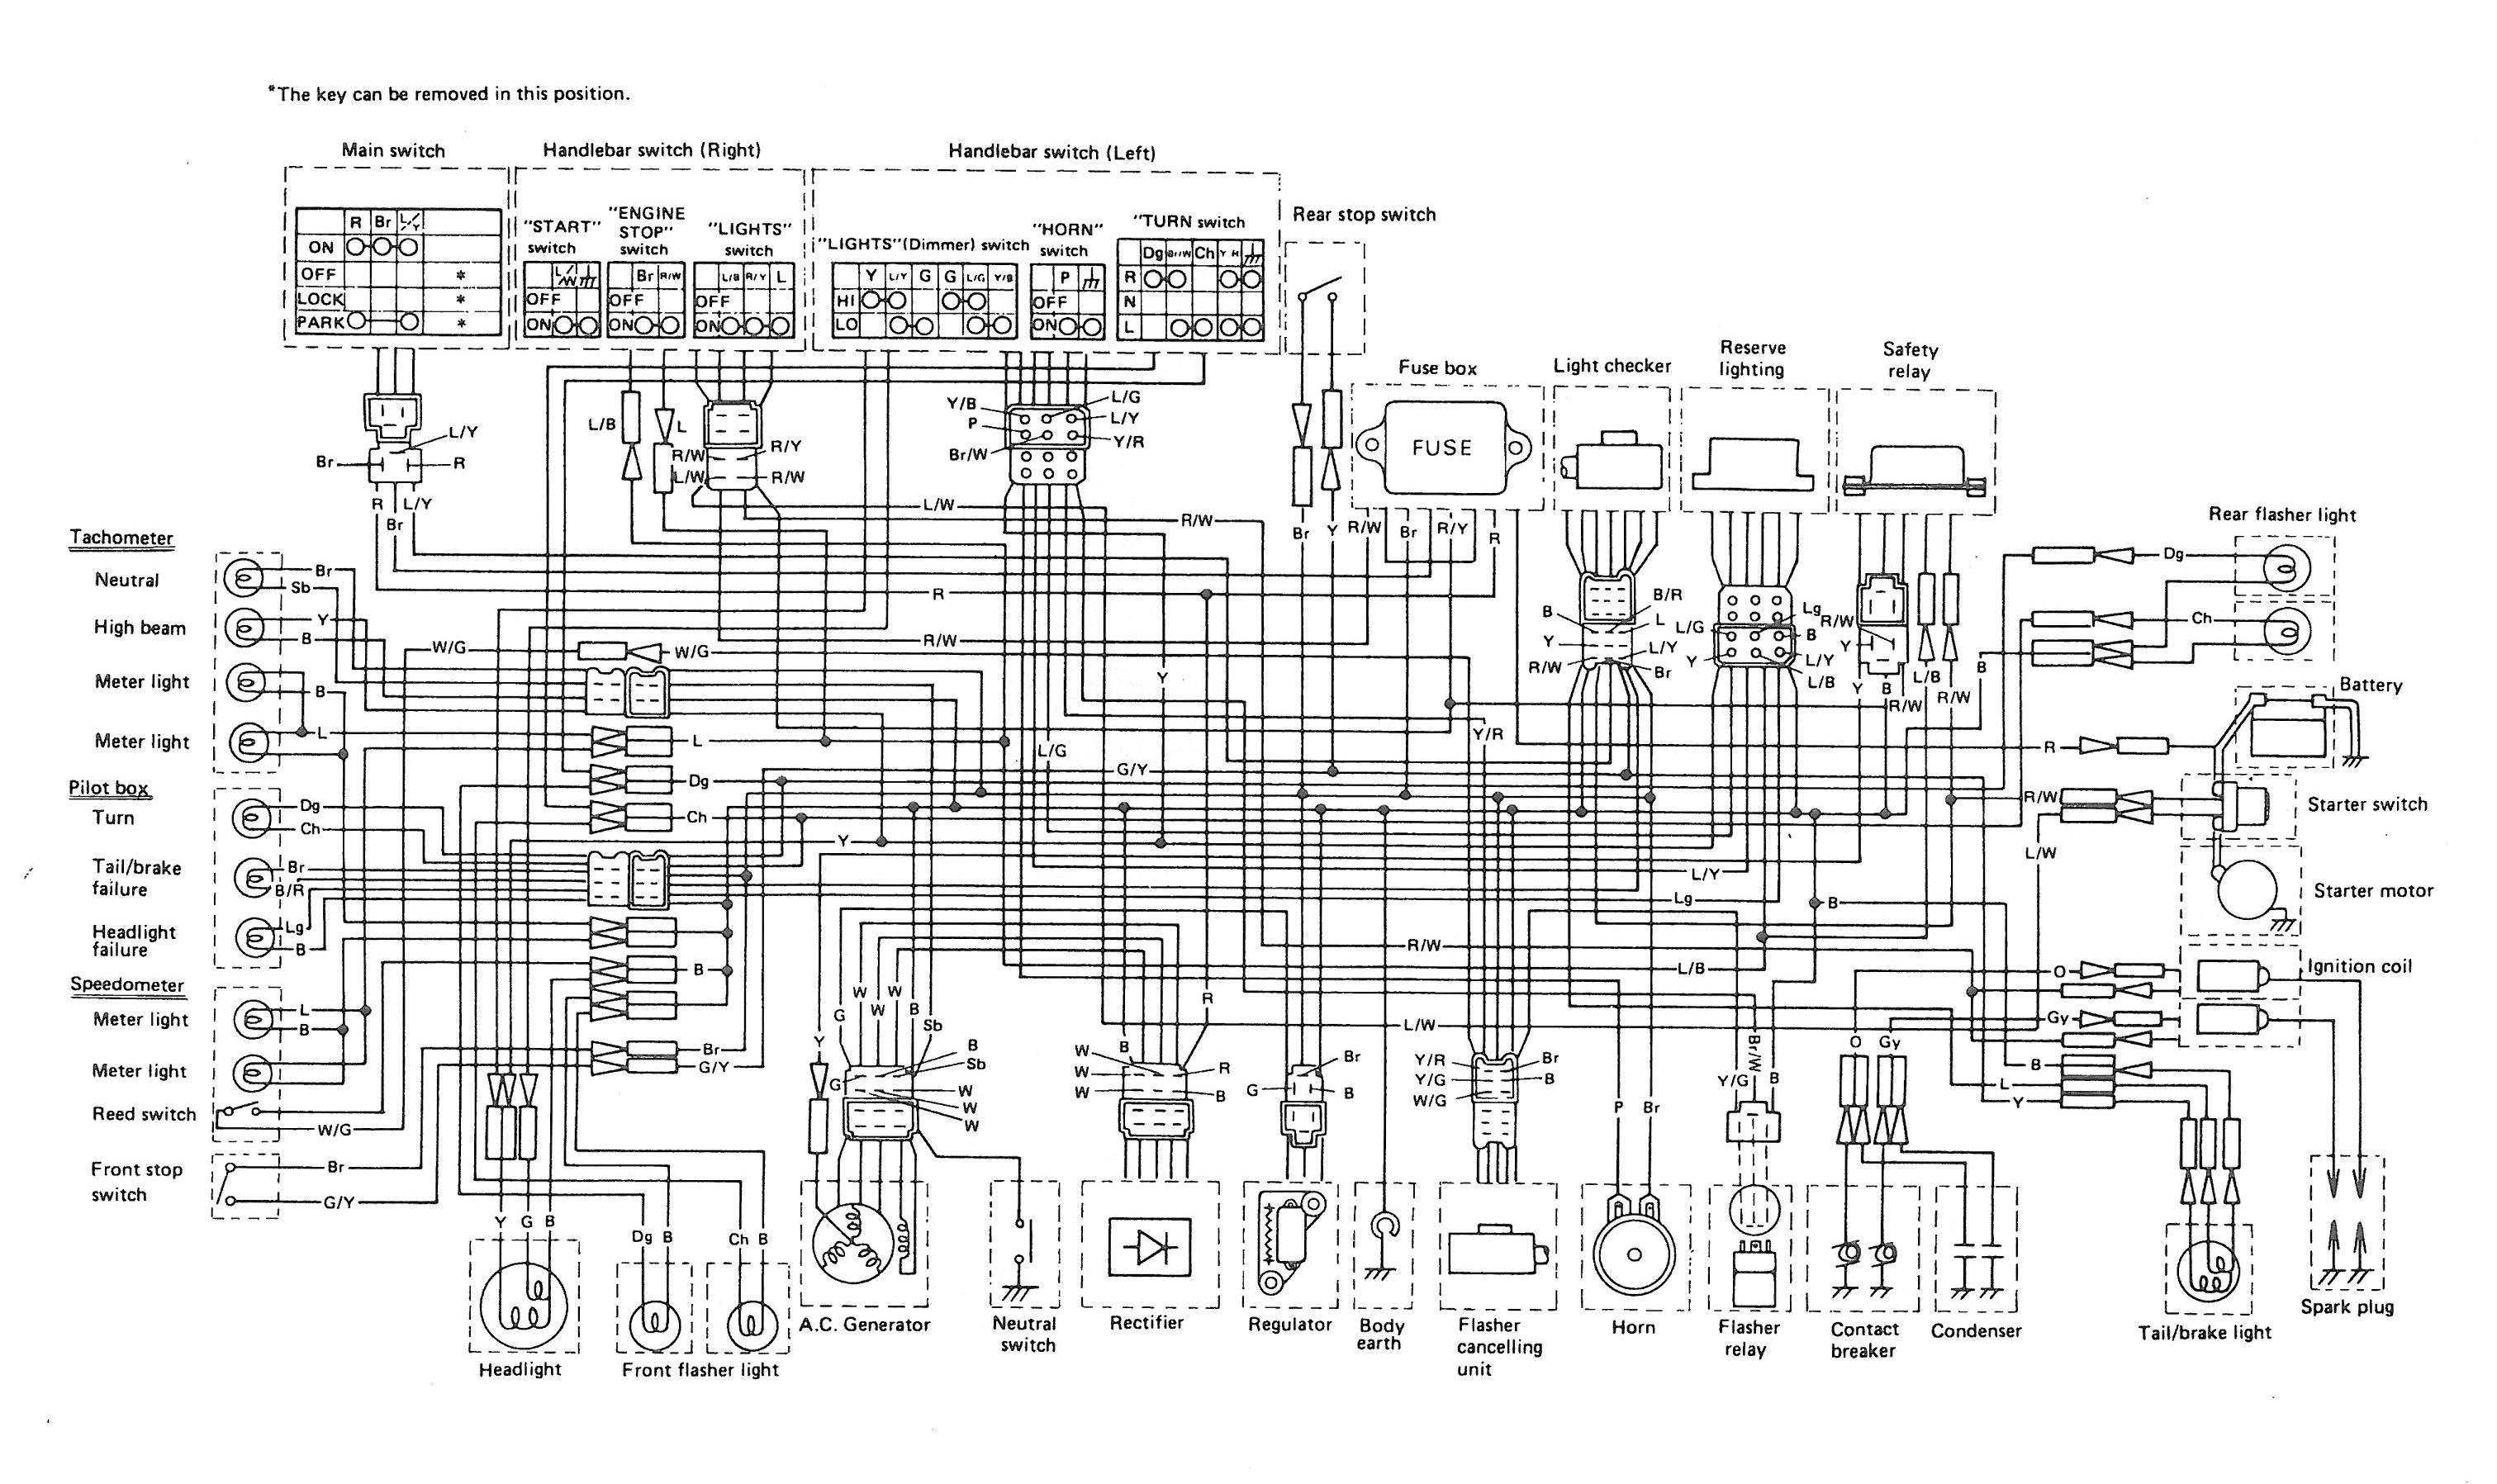 78 xsse wiring 6 1 elec diagram thexscafe 1980 xs650 wiring diagram at bayanpartner.co